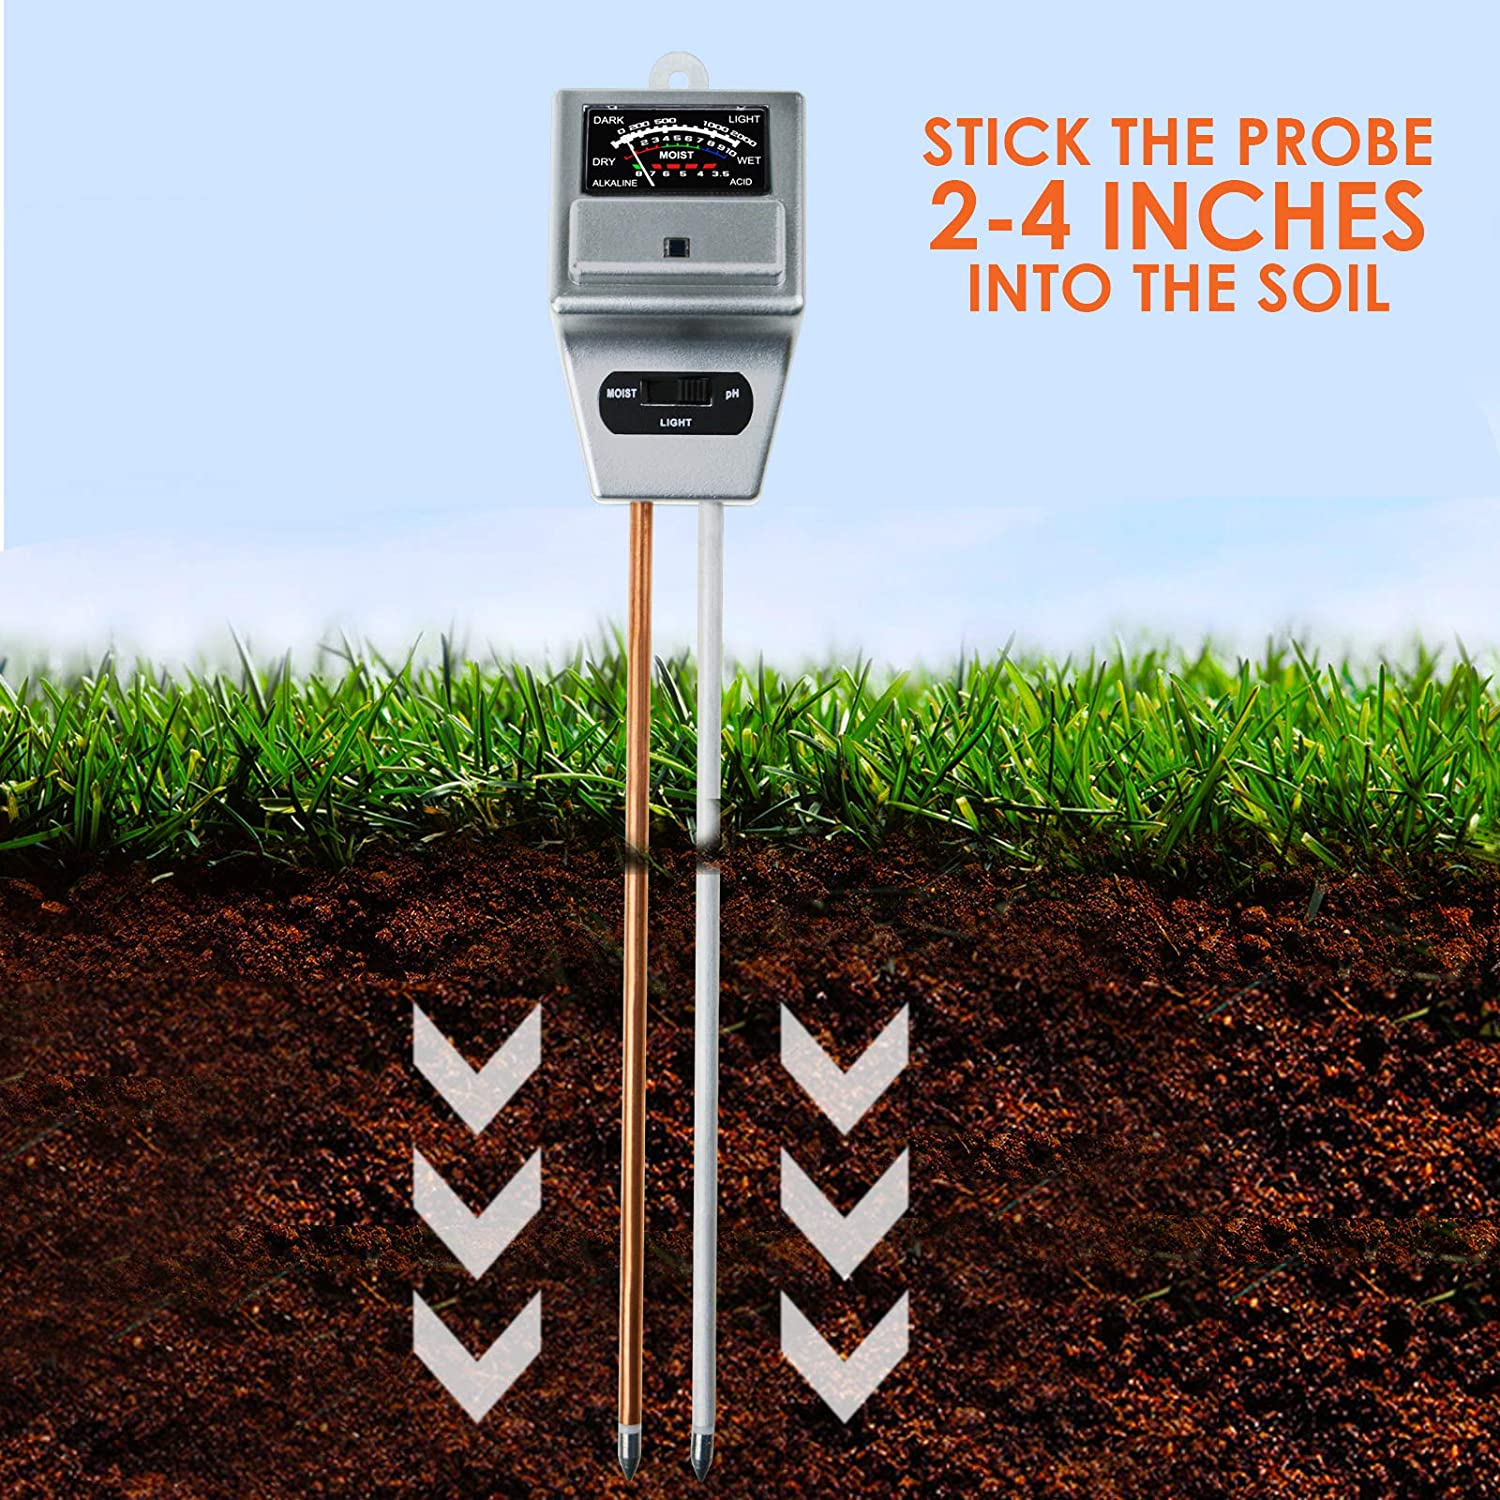 Moisture and Light Meter Tester for Home Lawn Garden DANOPLUS 3-in-1 Soil Test Kit pH Farm Healthy Growth of Plants Indoor//Outdoor Testing Plus Free Pouch